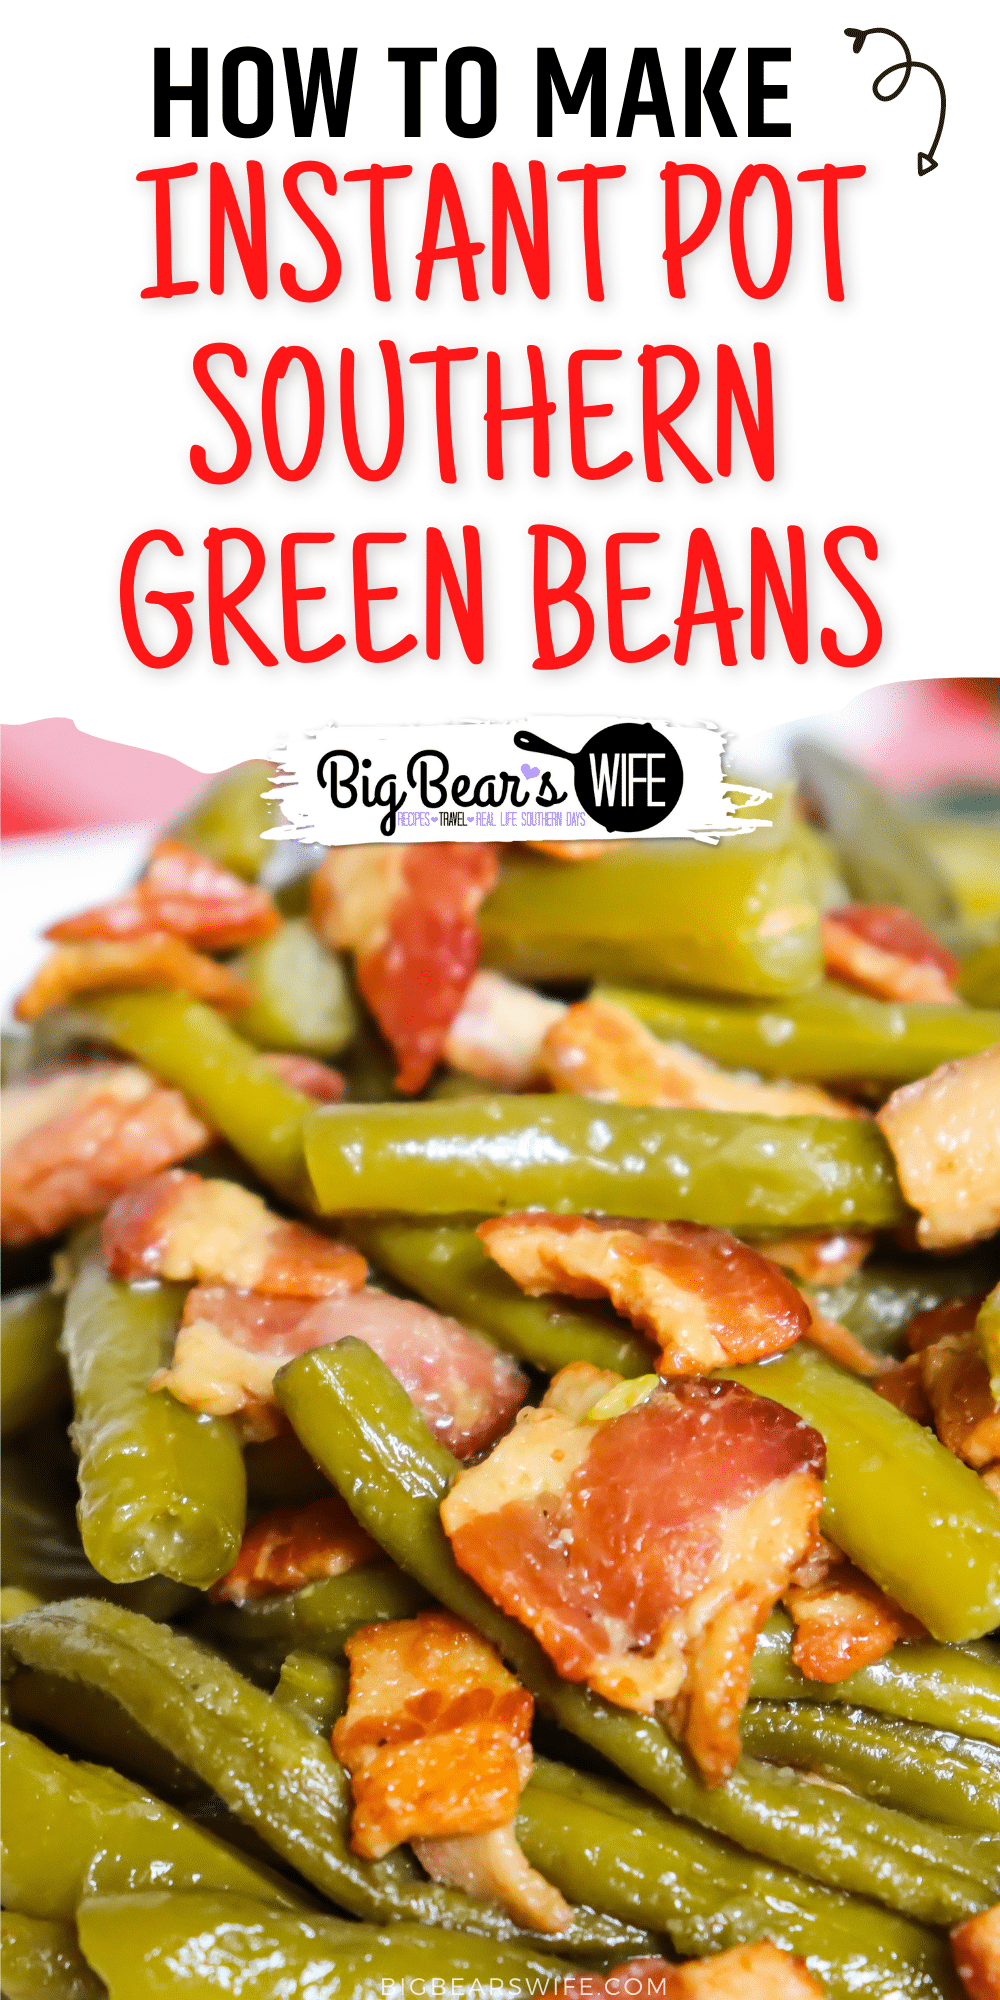 These Instant Pot Southern Green Beans taste just like slow cooked southern green beans but only take about 45 minutes in the Instant Pot instead of hours on the stove! via @bigbearswife